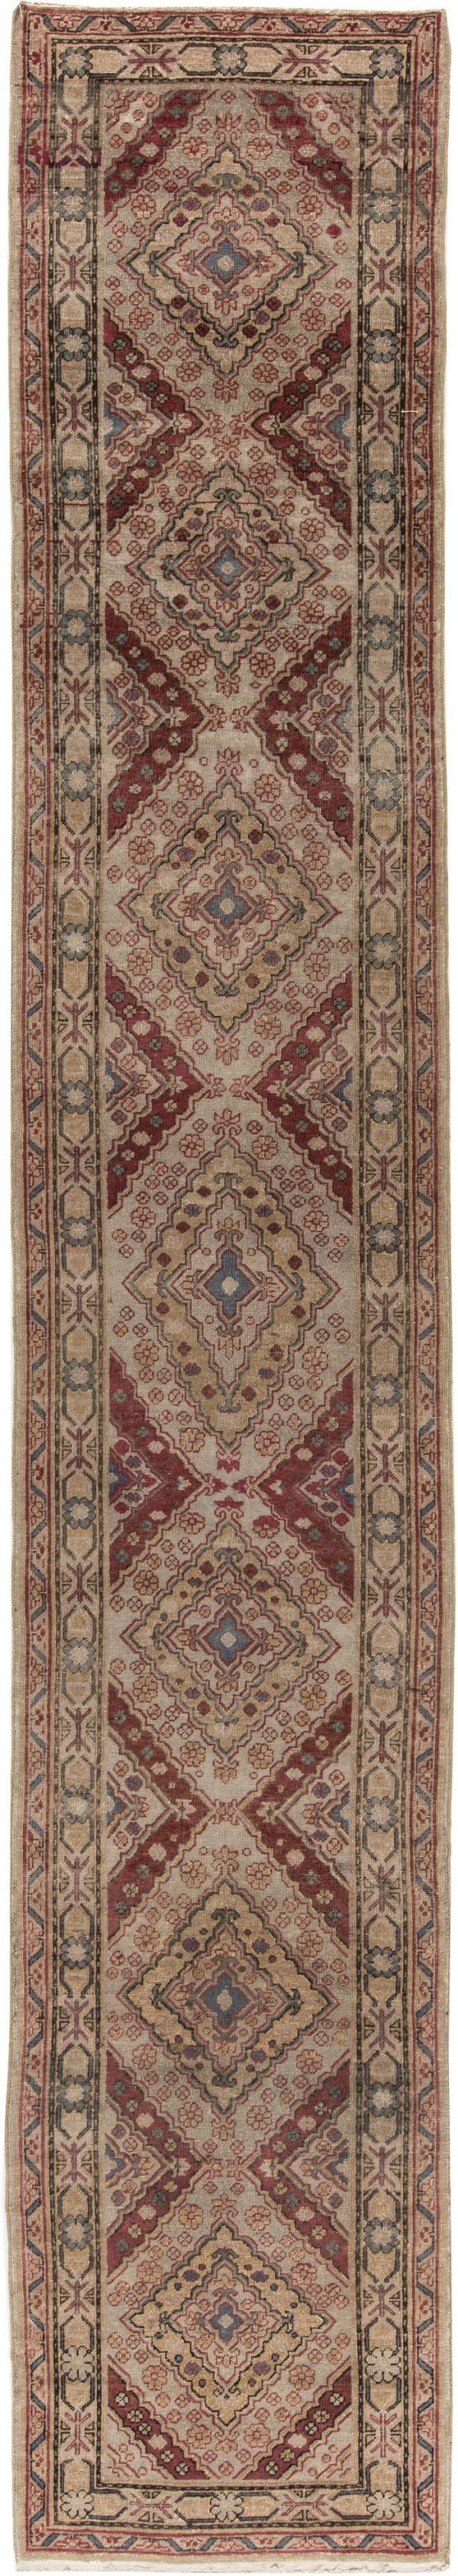 Antique North West Persian Runner BB6284